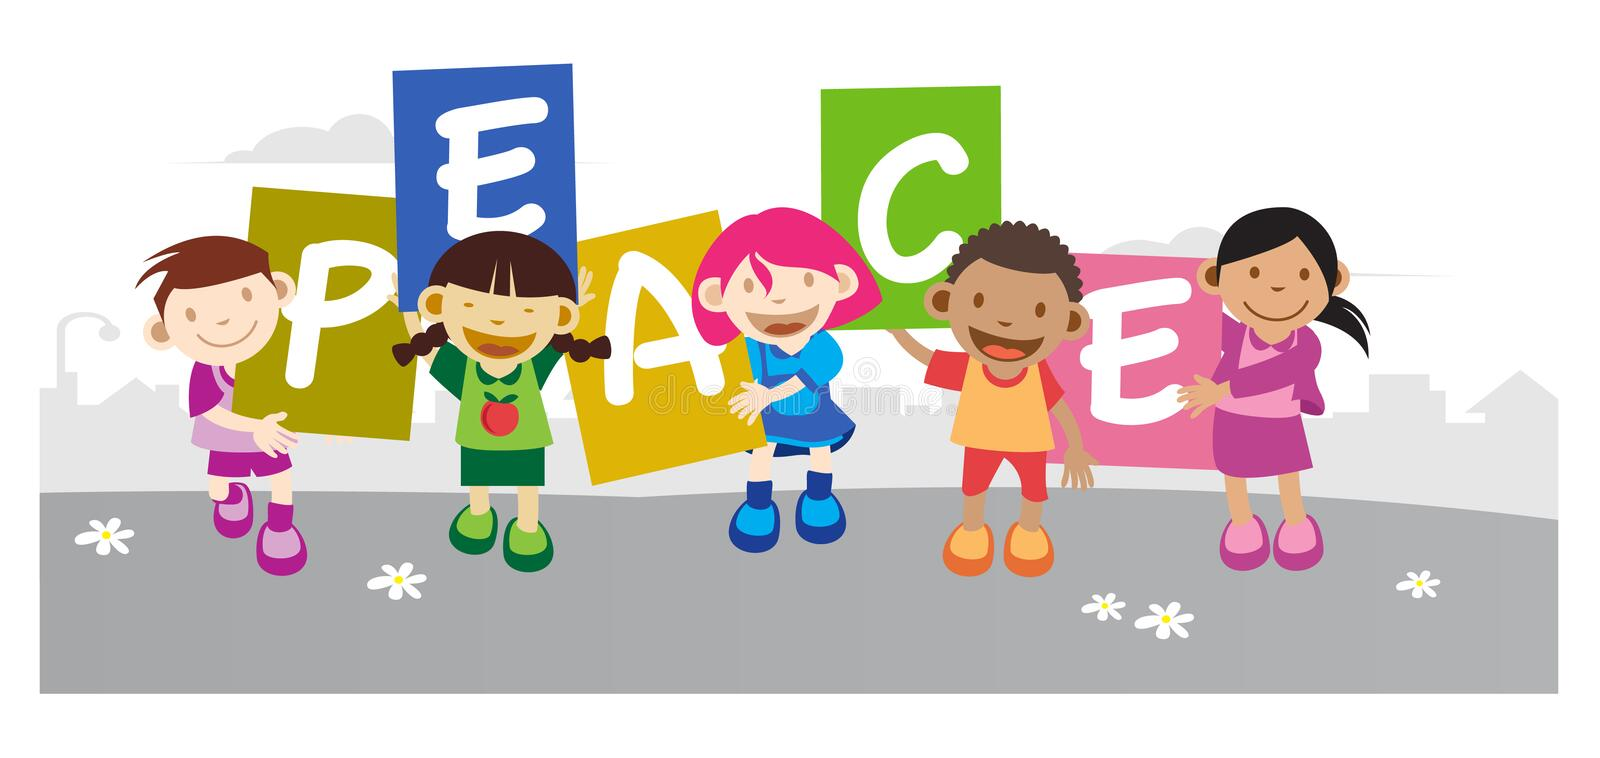 Image result for peace banners for kids